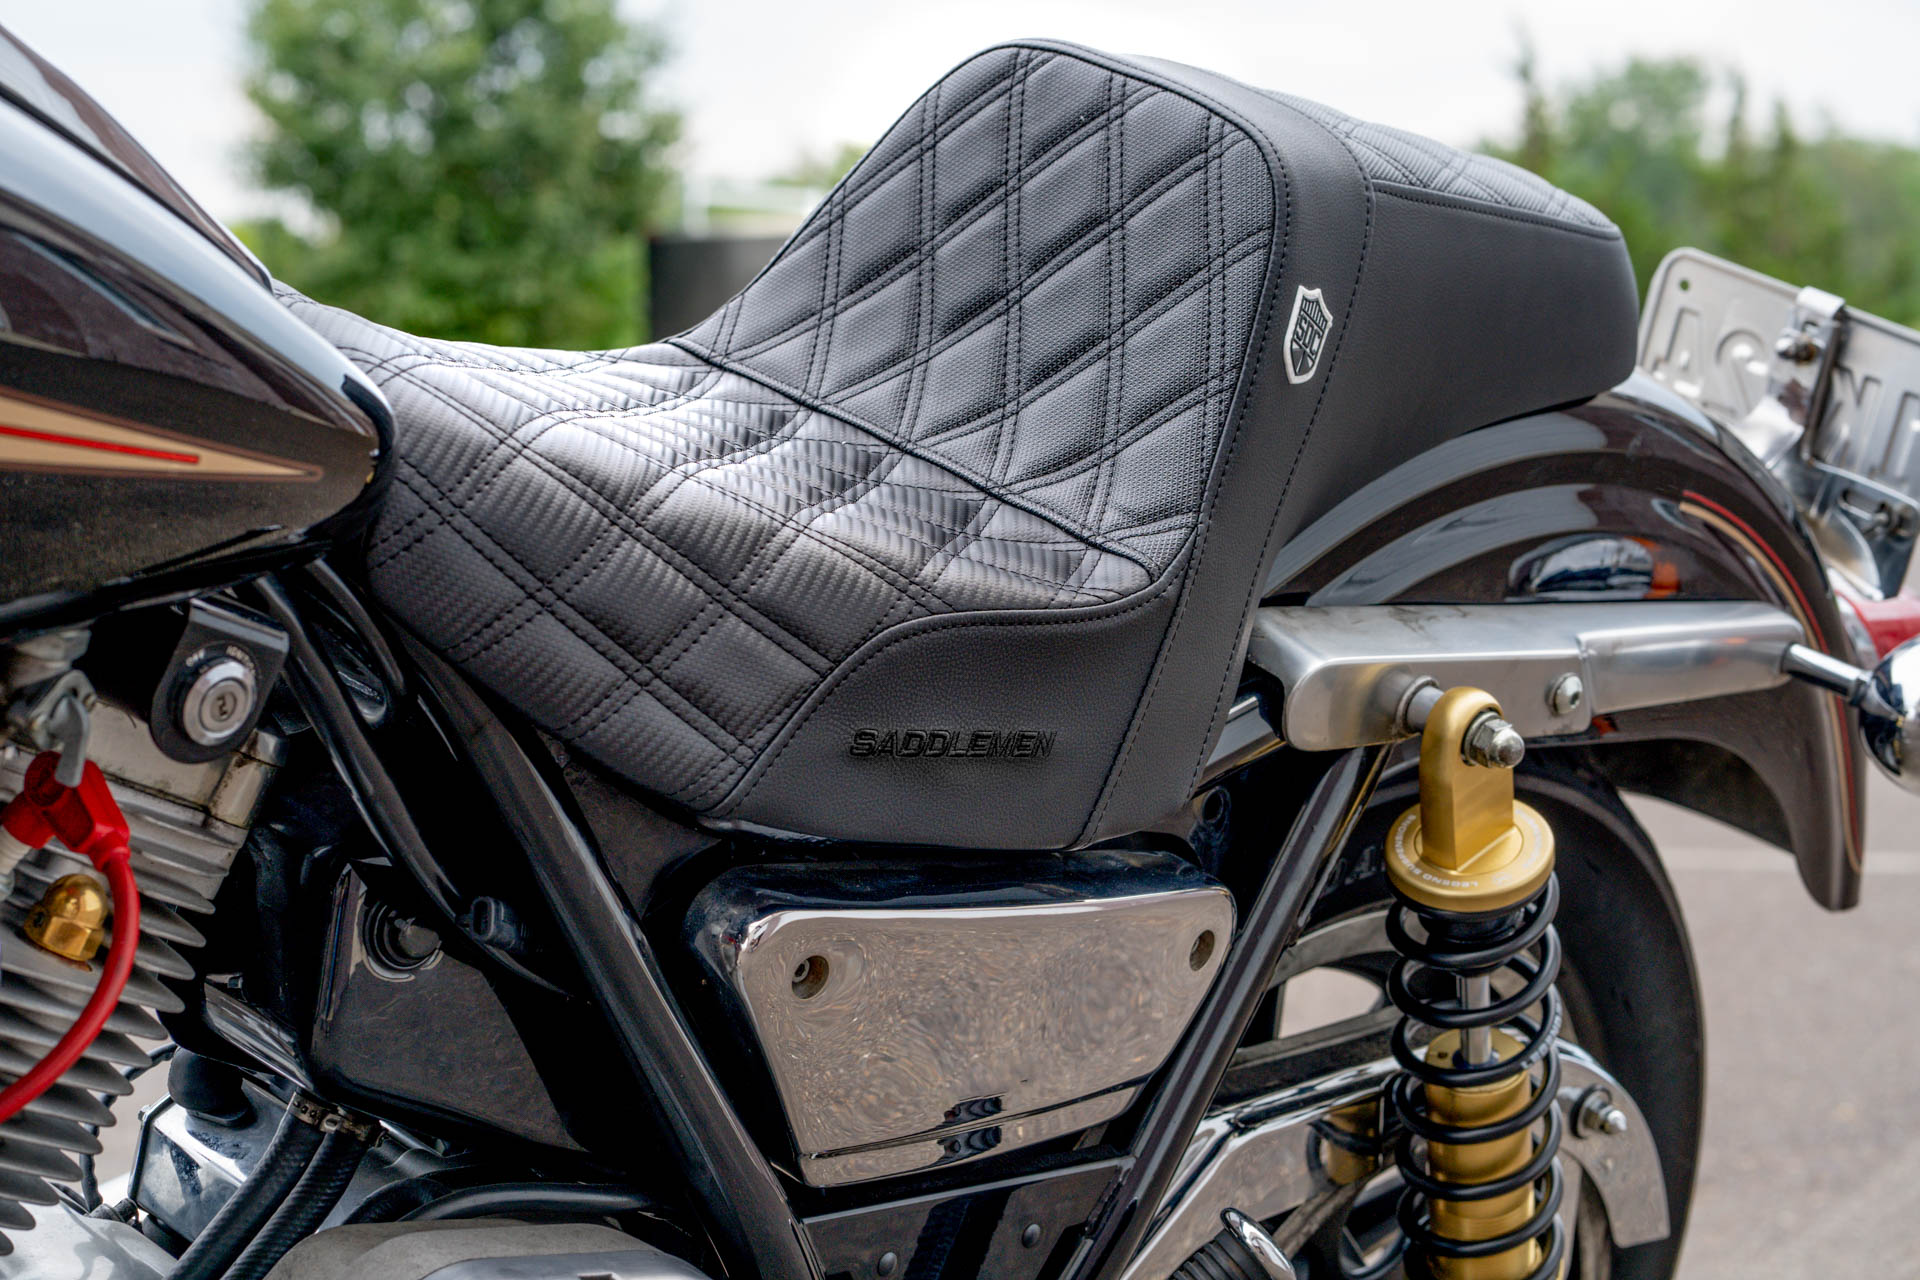 San Diego Customs Pro Series Performance Gripper Seat - Harley FXR